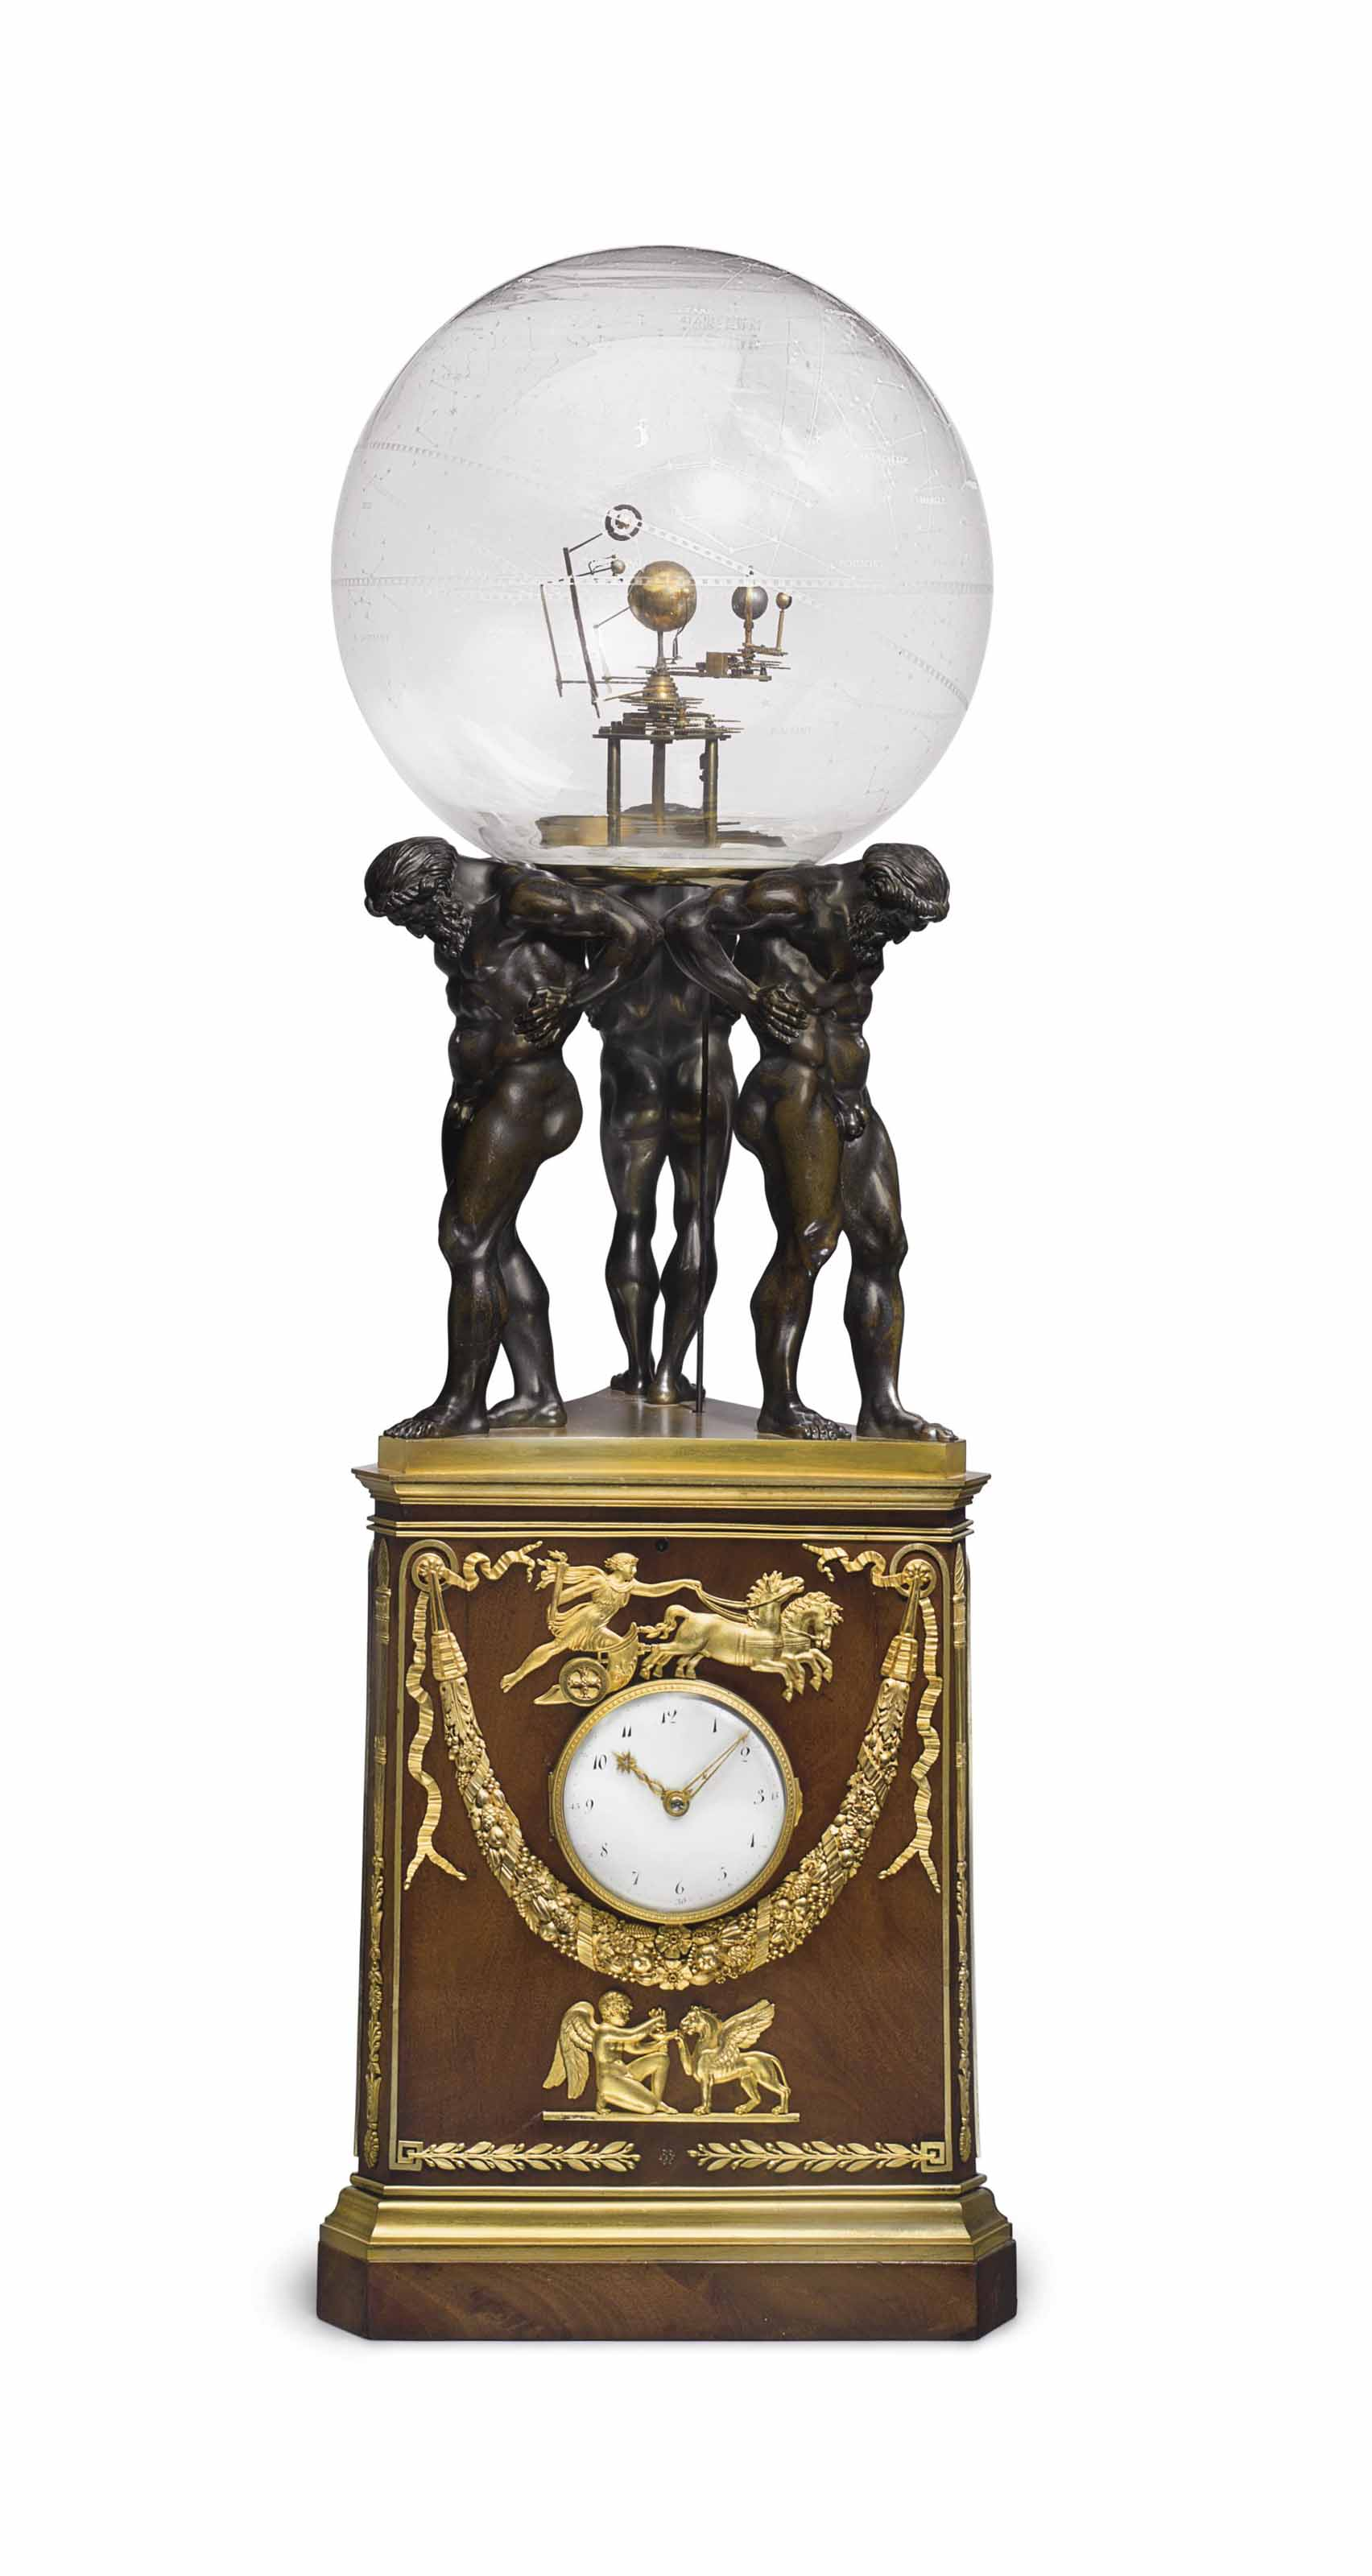 A CONSULAT ORMOLU-MOUNTED MAHOGANY ASTRONOMICAL CLOCK